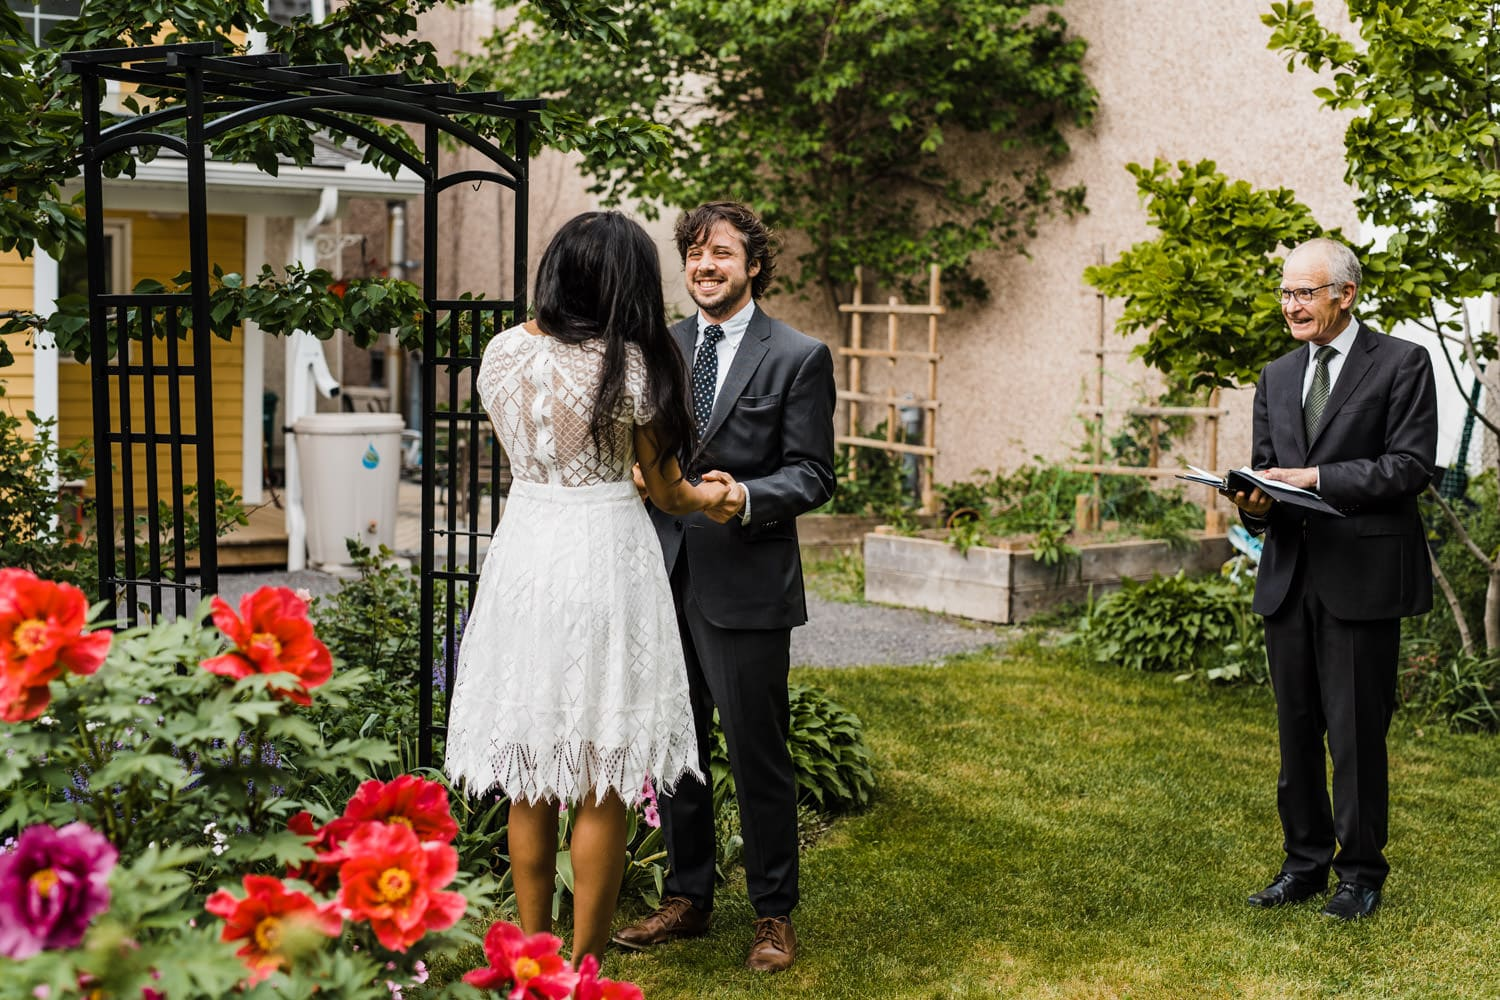 couple laughs together during small backyard ceremony - ottawa elopement